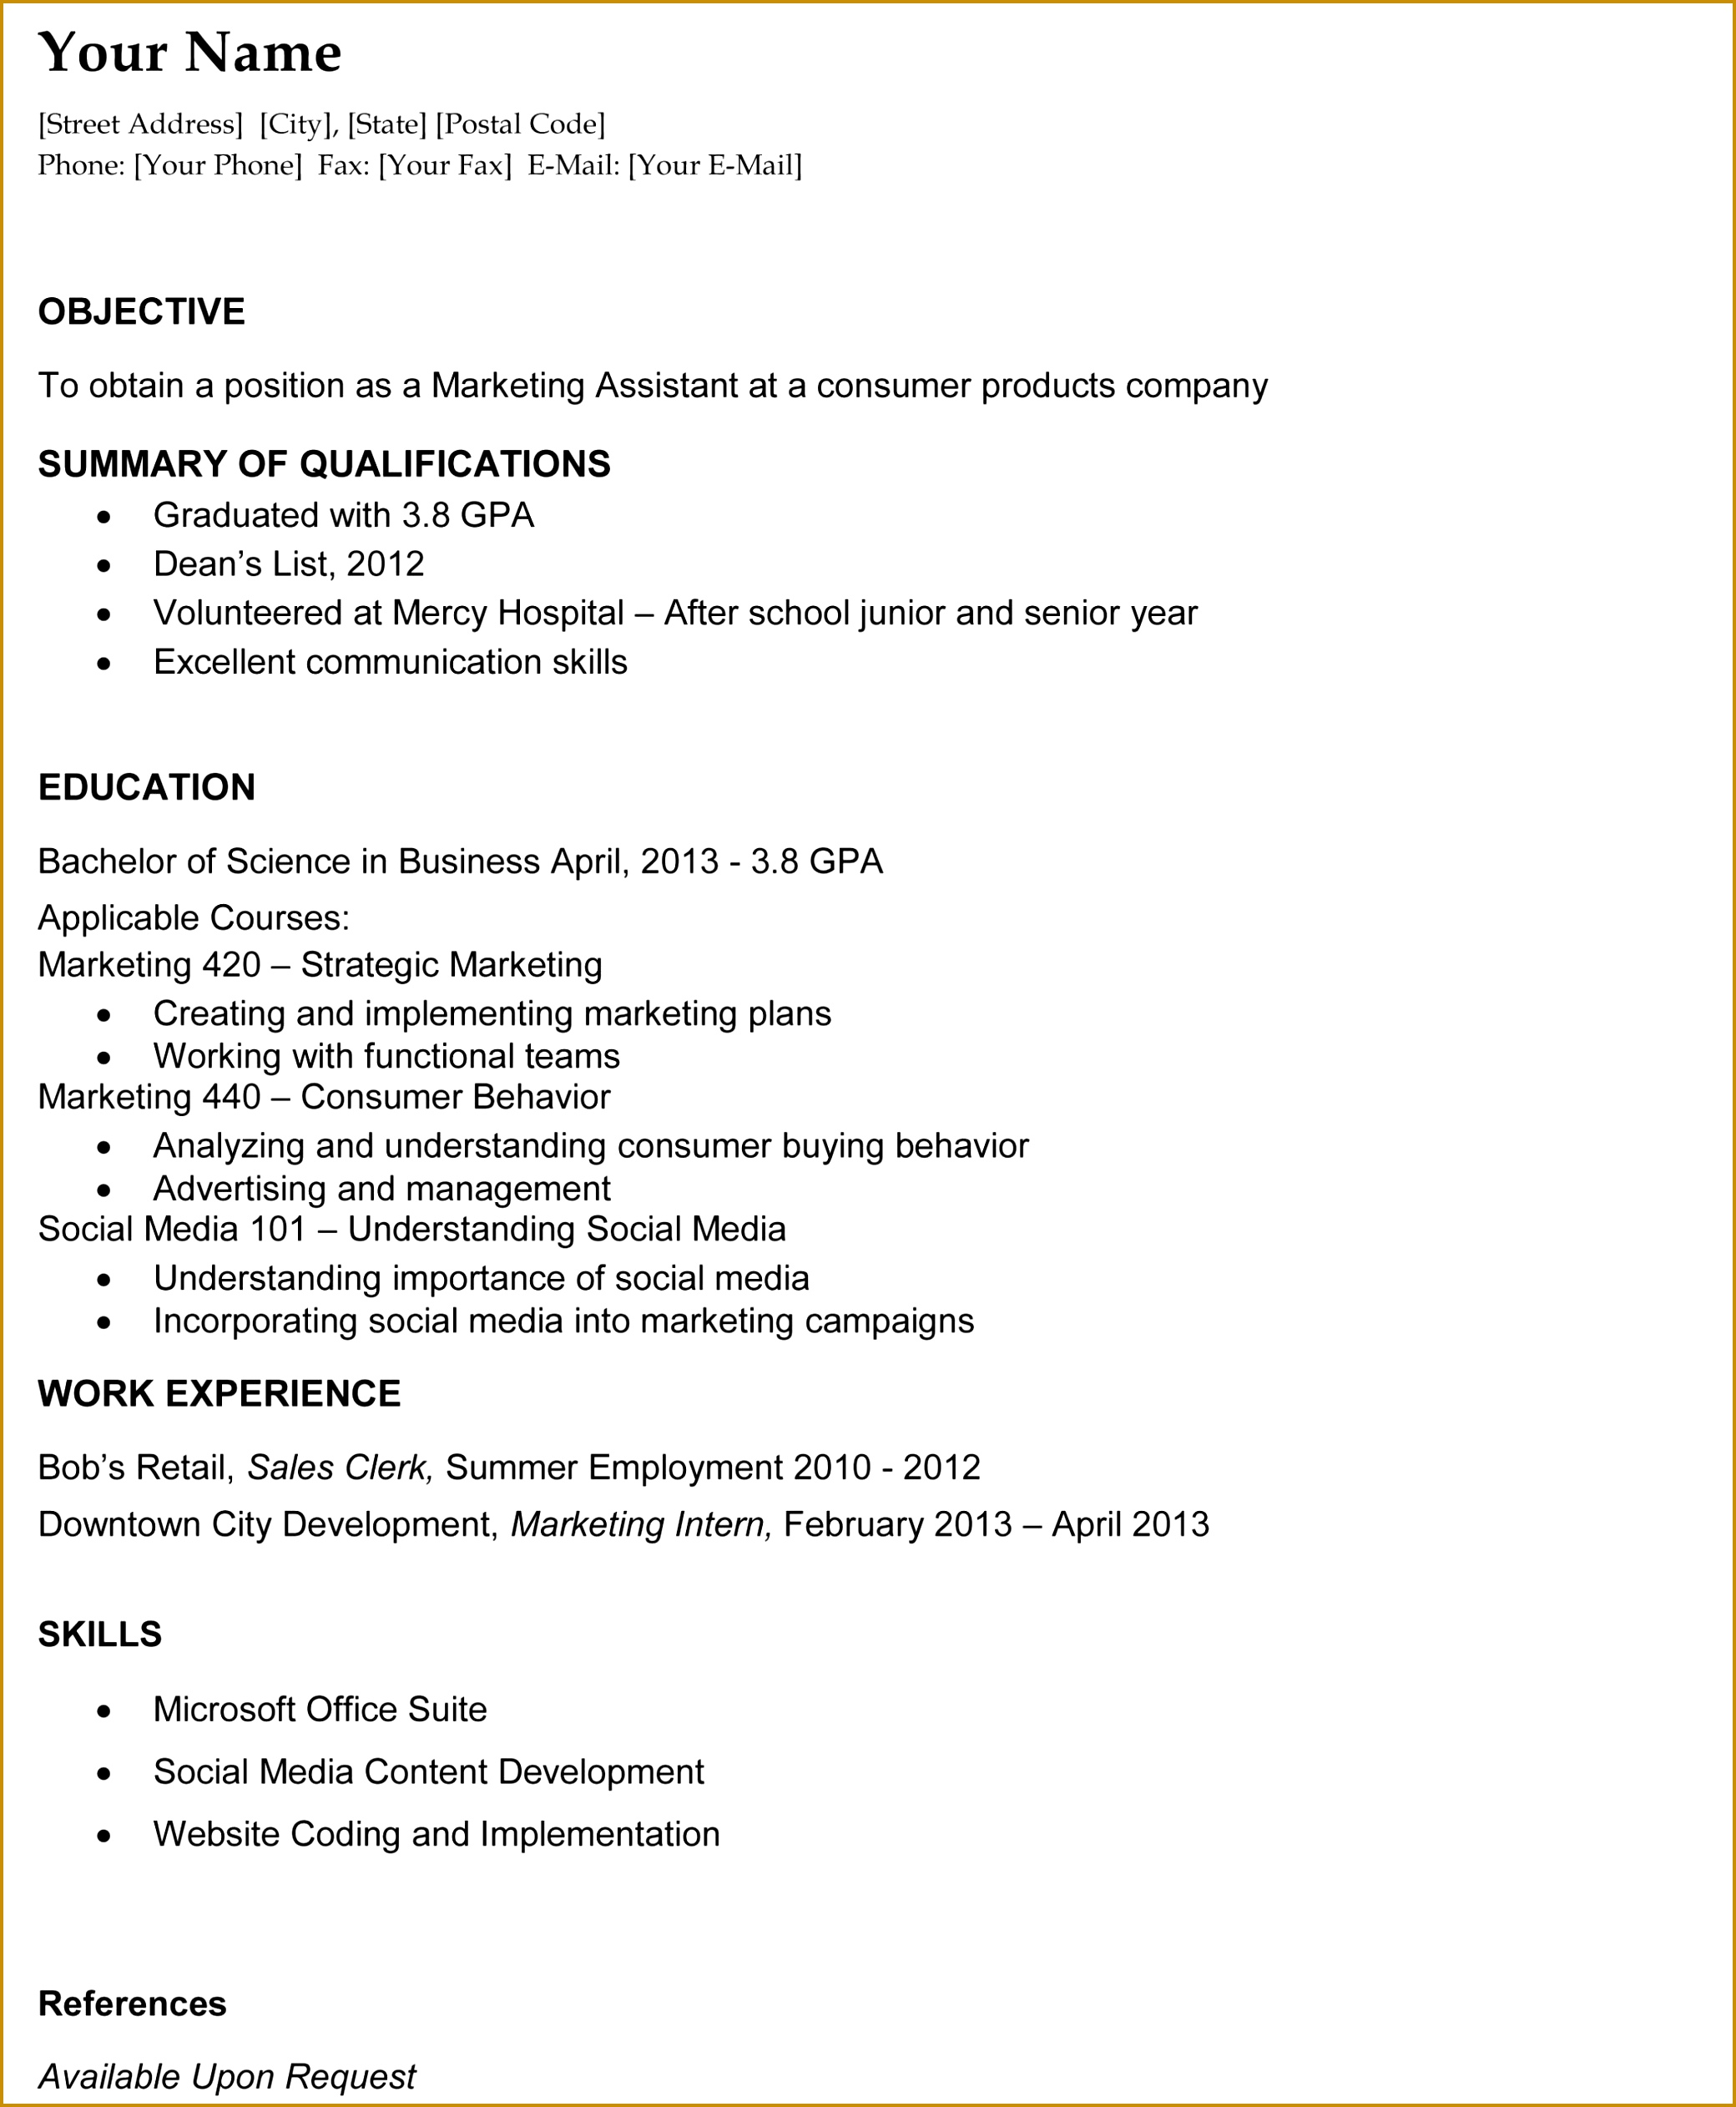 Project Proposal Template Word 2010 Diagram Intertherm Thermostat 1 2 Page Resume 3 Doc Mercy 25242080